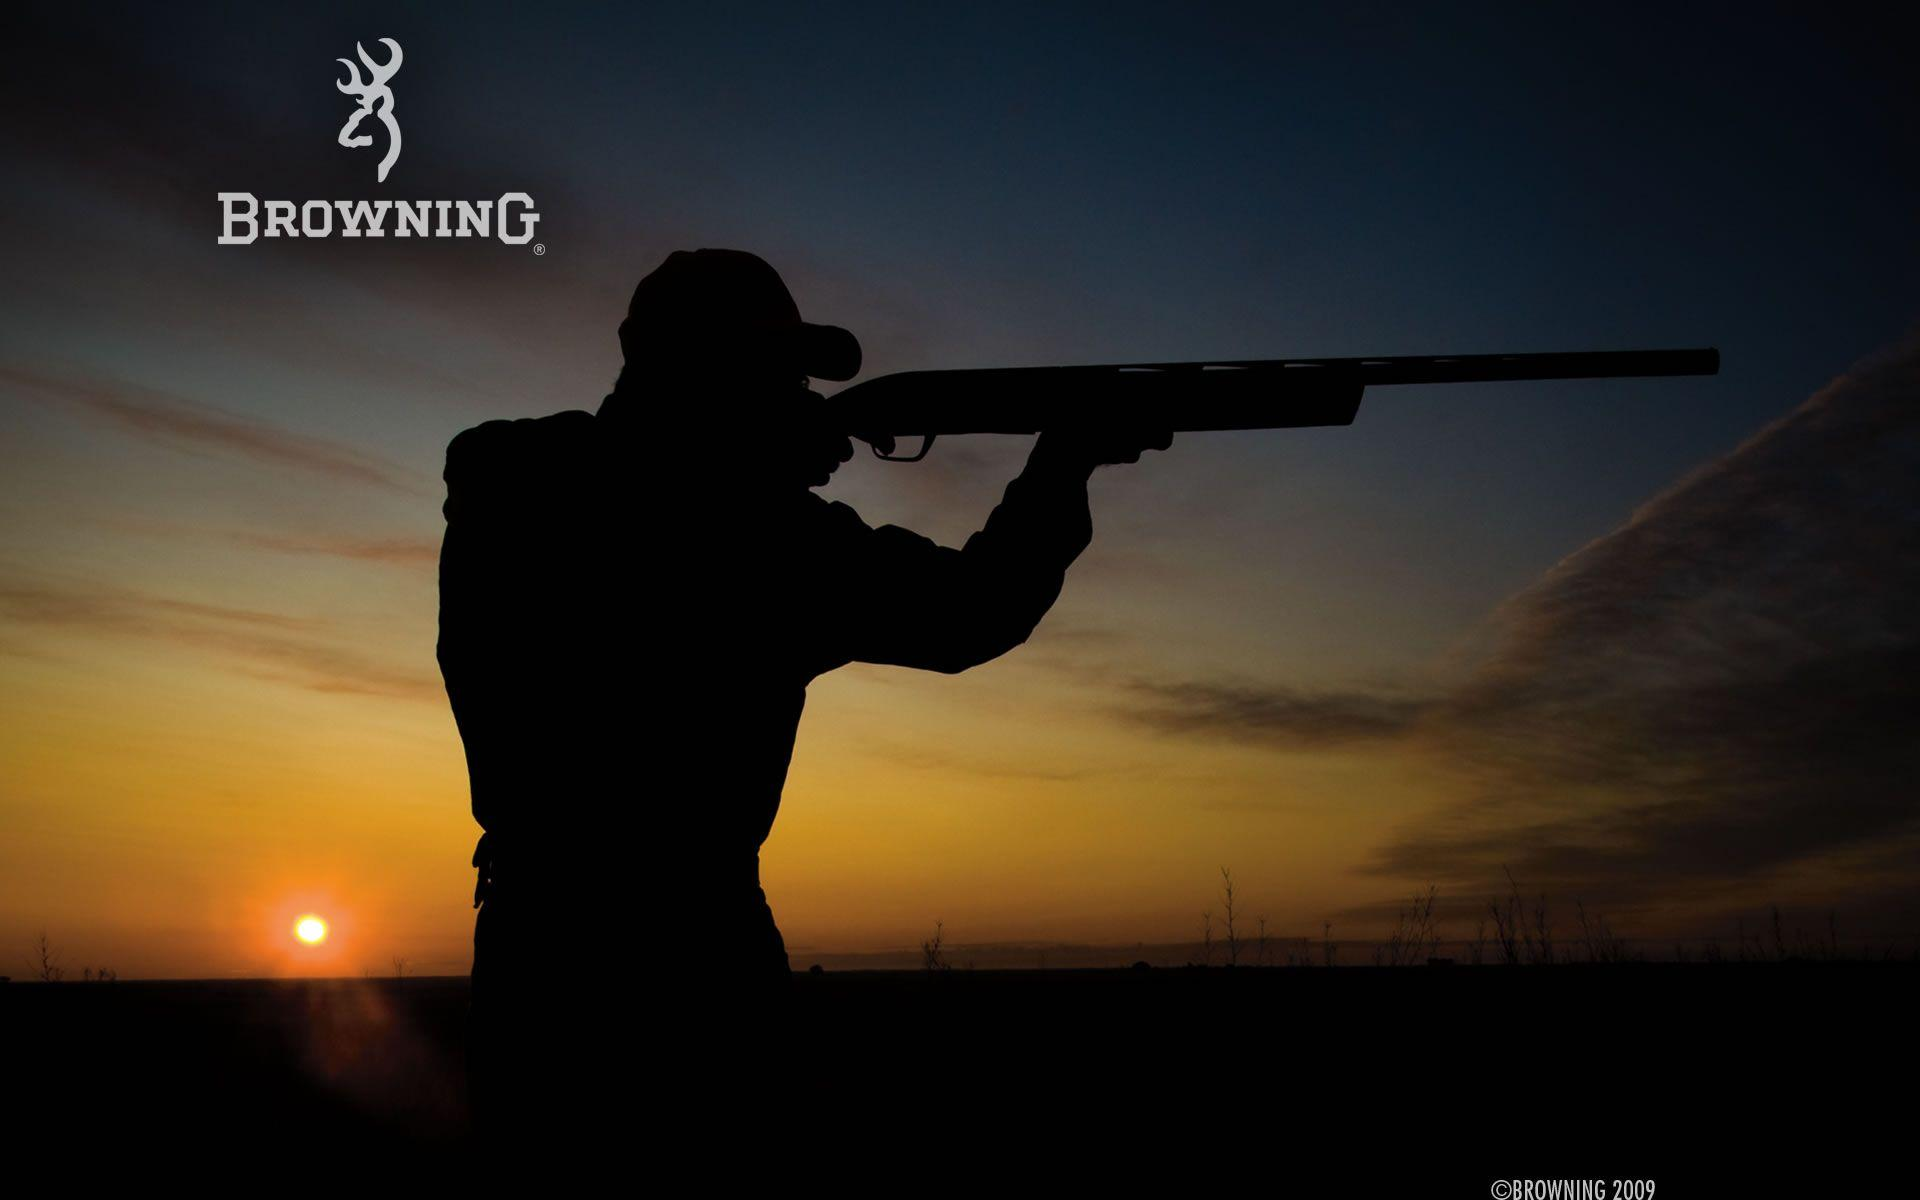 Browning Wallpaper